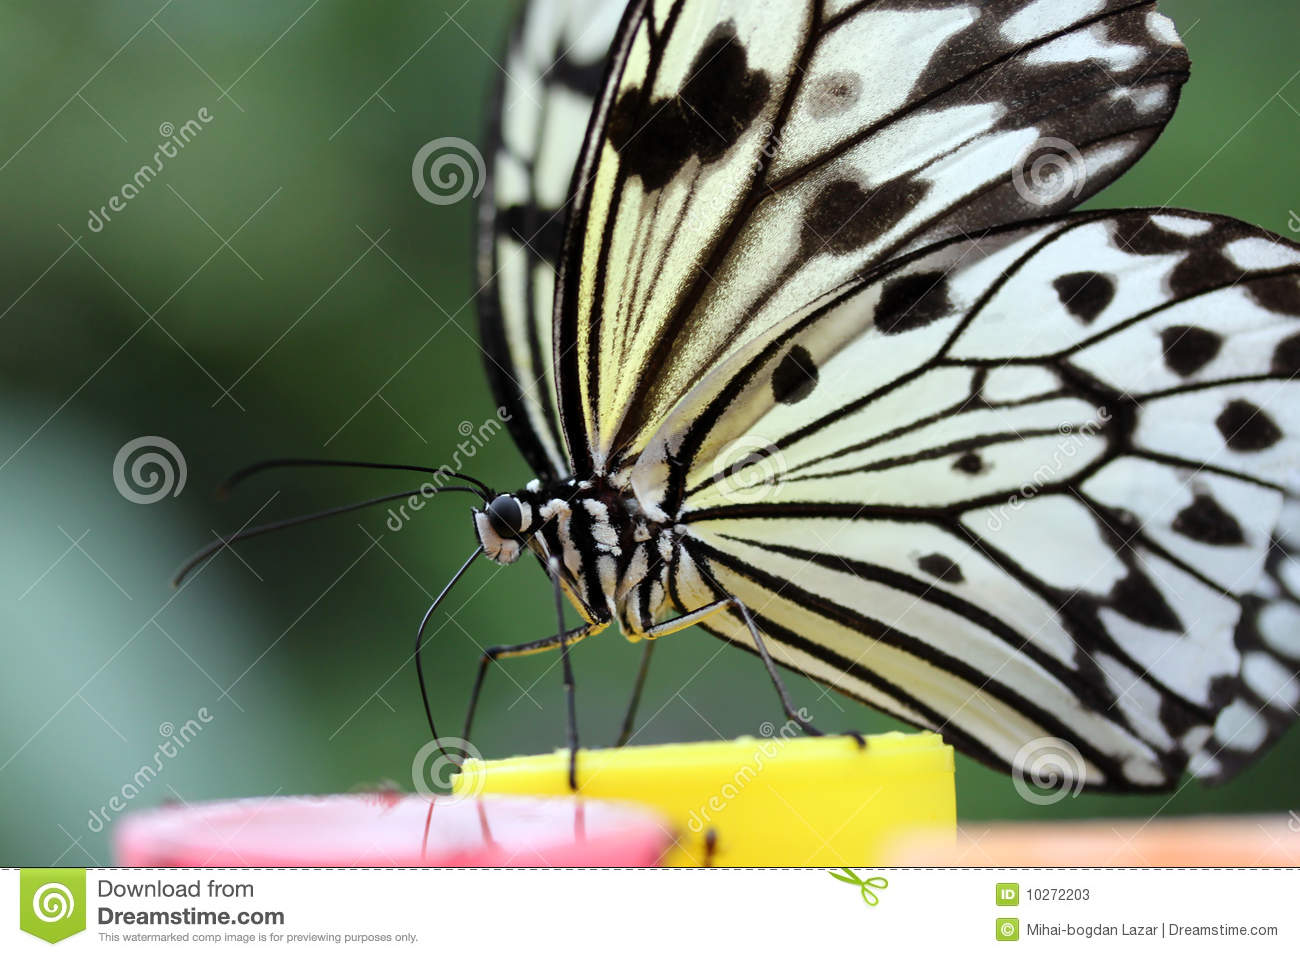 butterfly in thesis time The lemon butterfly is one of the economically important pests whose larval   the female butterfly goes from plant to plant, laying a single egg at a time on top  of a  thesis submitted to acharya ng ranga agricultural university, hyderabad.